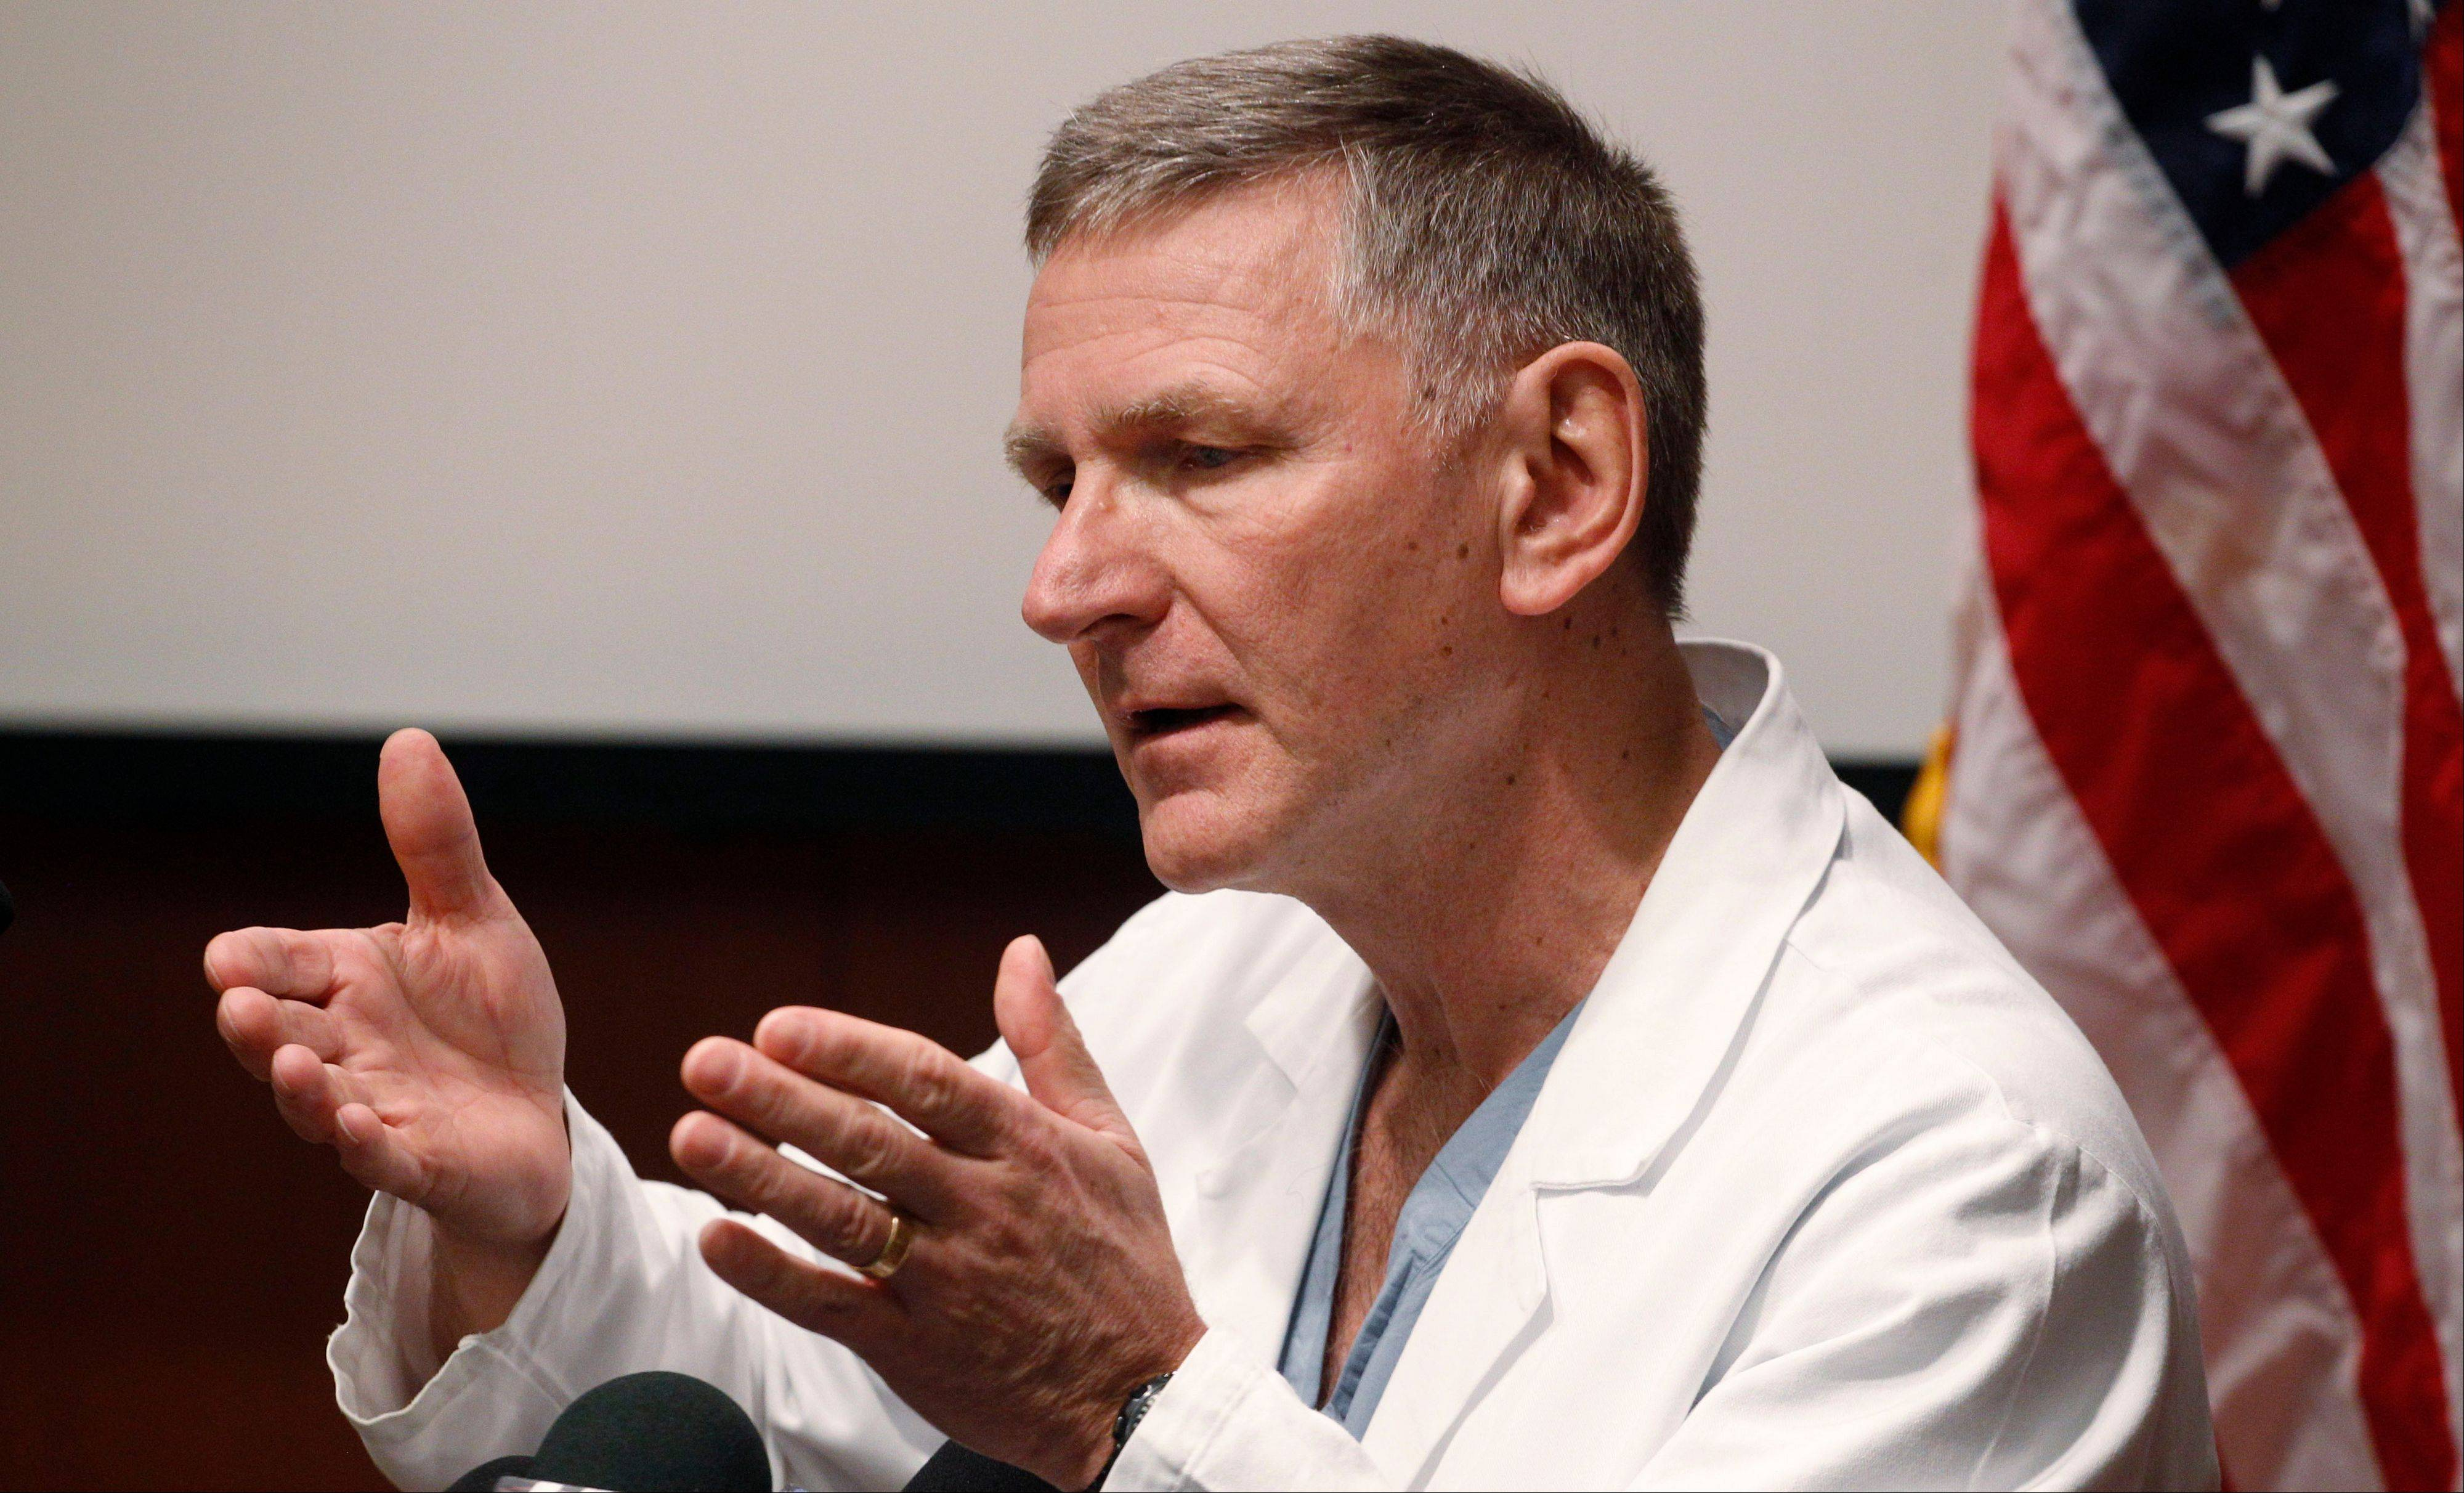 Richard Fessler, a neurosurgeon at Northwestern Memorial Hospital who performed surgery on U.S. Sen. Mark Kirk after he suffered a stroke, answers questions about the senator's conditions at a news conference Jan. 23.